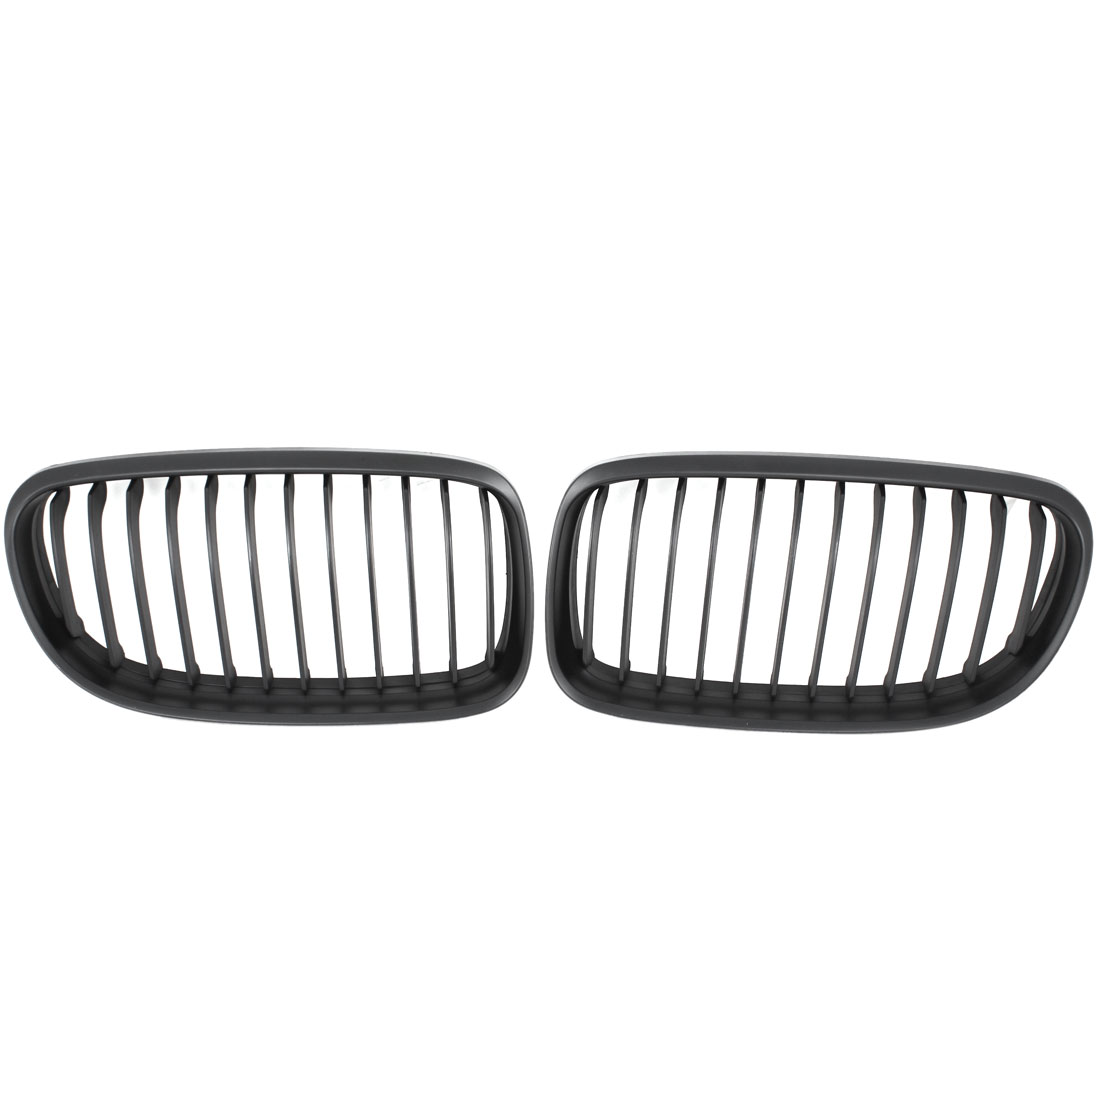 Pair Black Car Coupe Convertible Matte Kidney Grille for BMW 3 Series 335i 328i